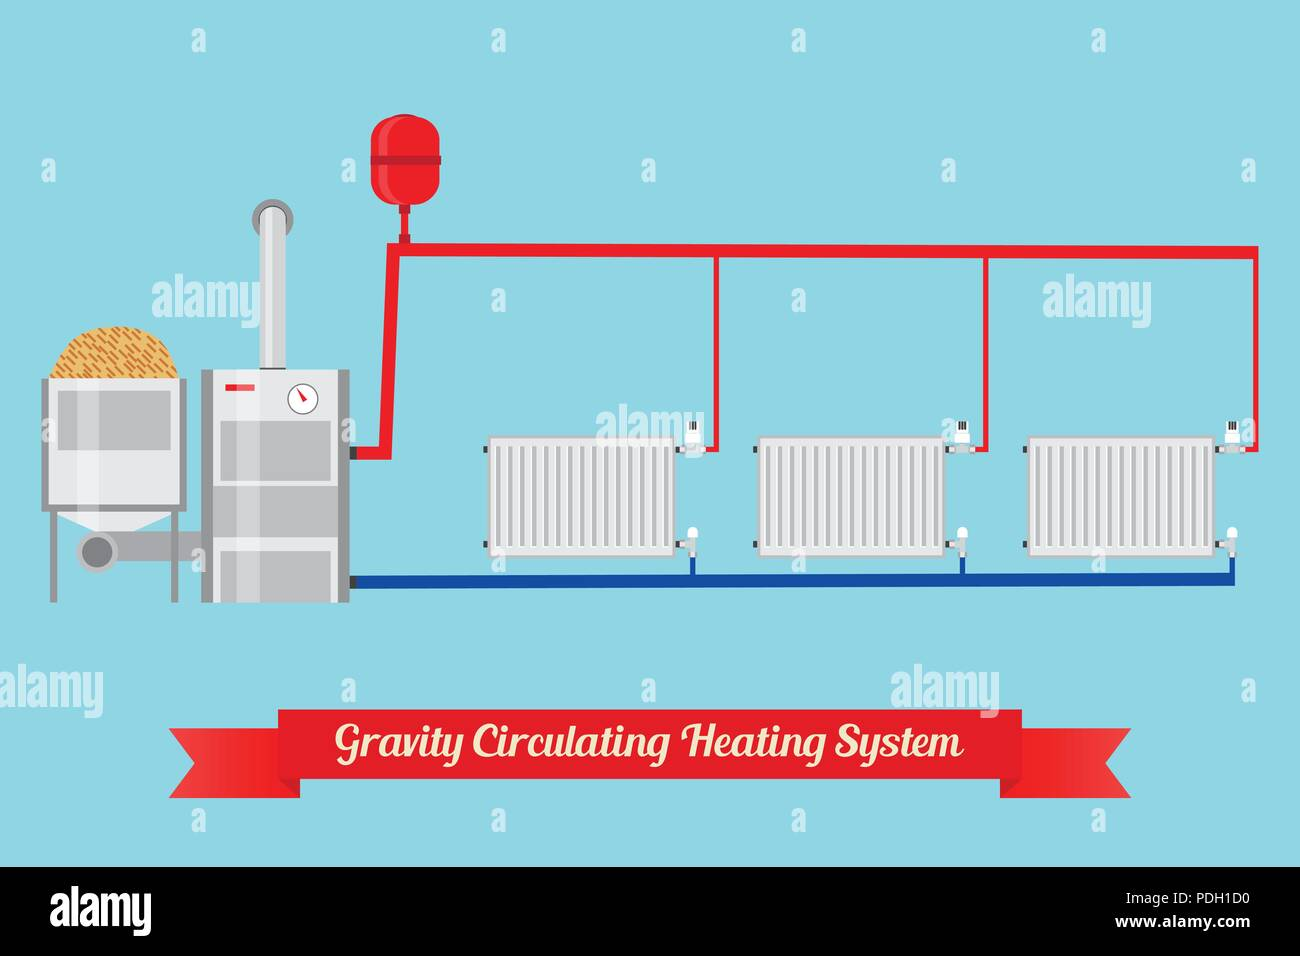 Water Boiler Furnace Stockfotos & Water Boiler Furnace Bilder - Alamy